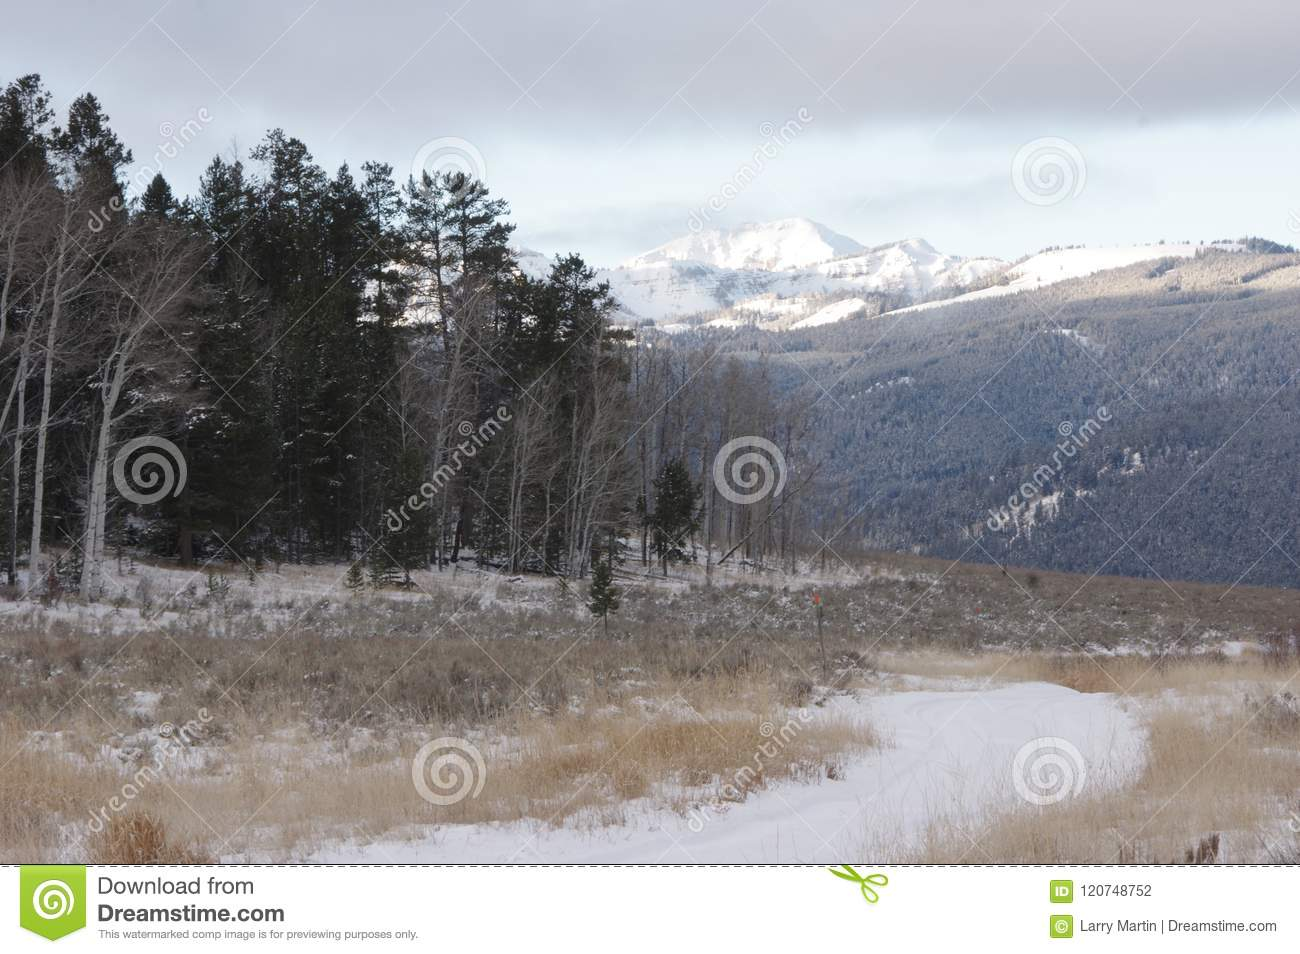 Sapphire Mountains Montana Map.Sapphire Mountains In Montana In Winter Stock Photo Image Of